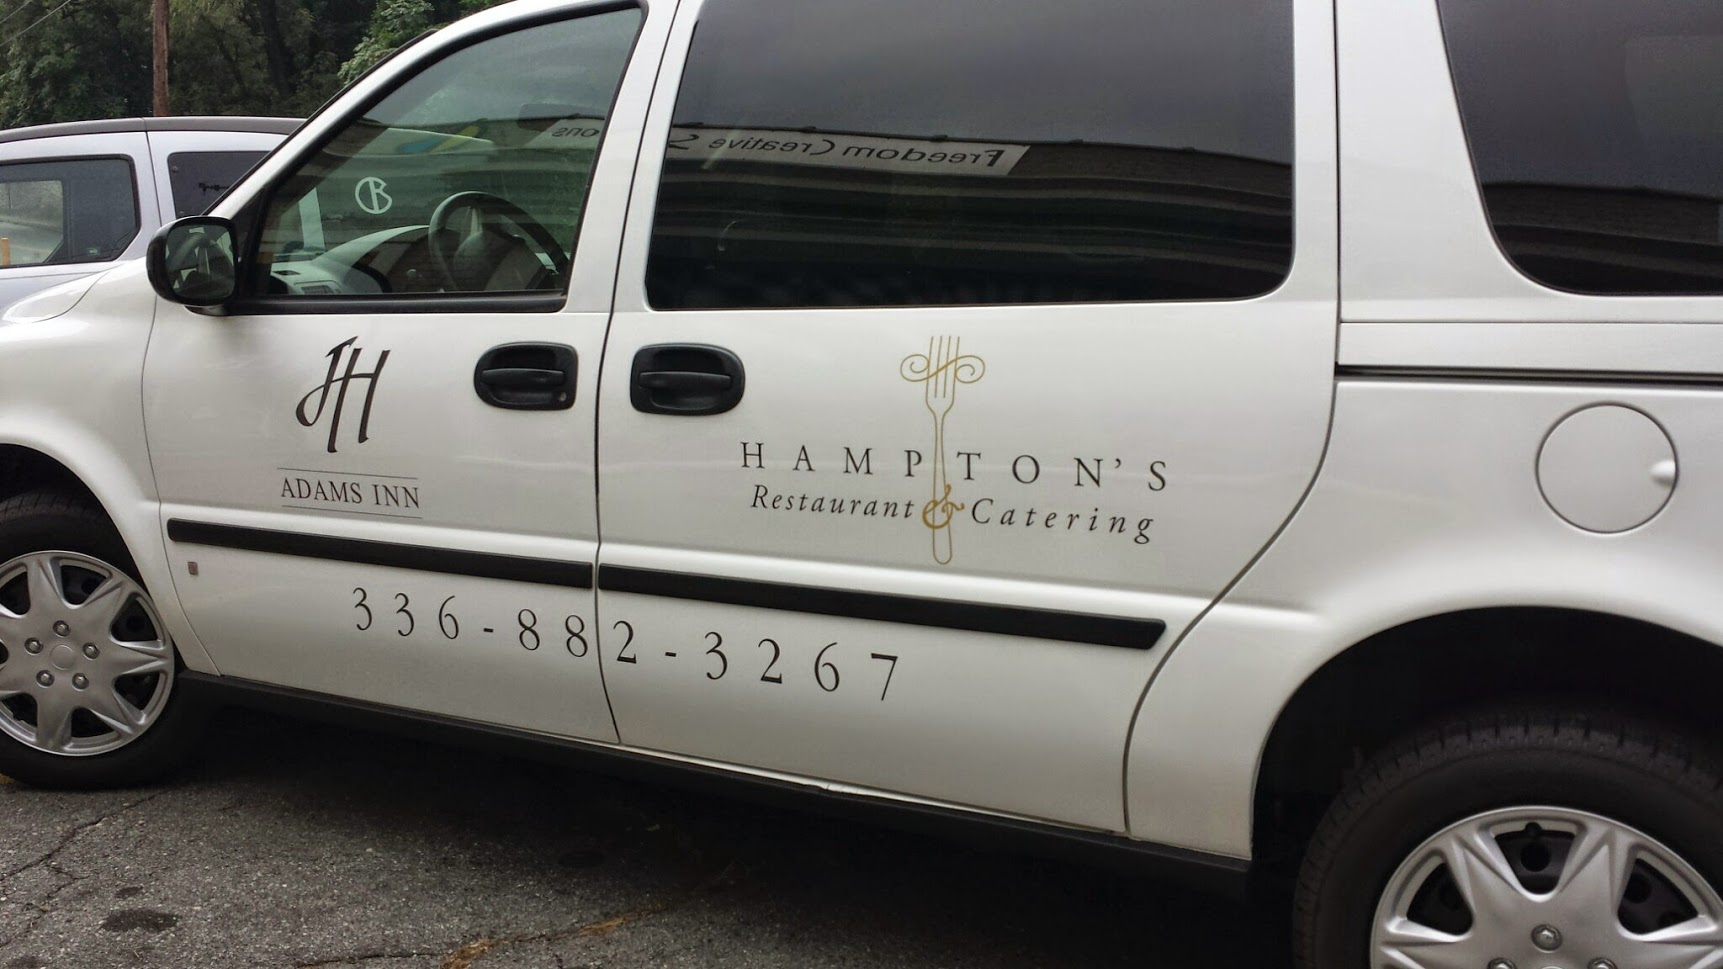 hamptons_restaurant_catering